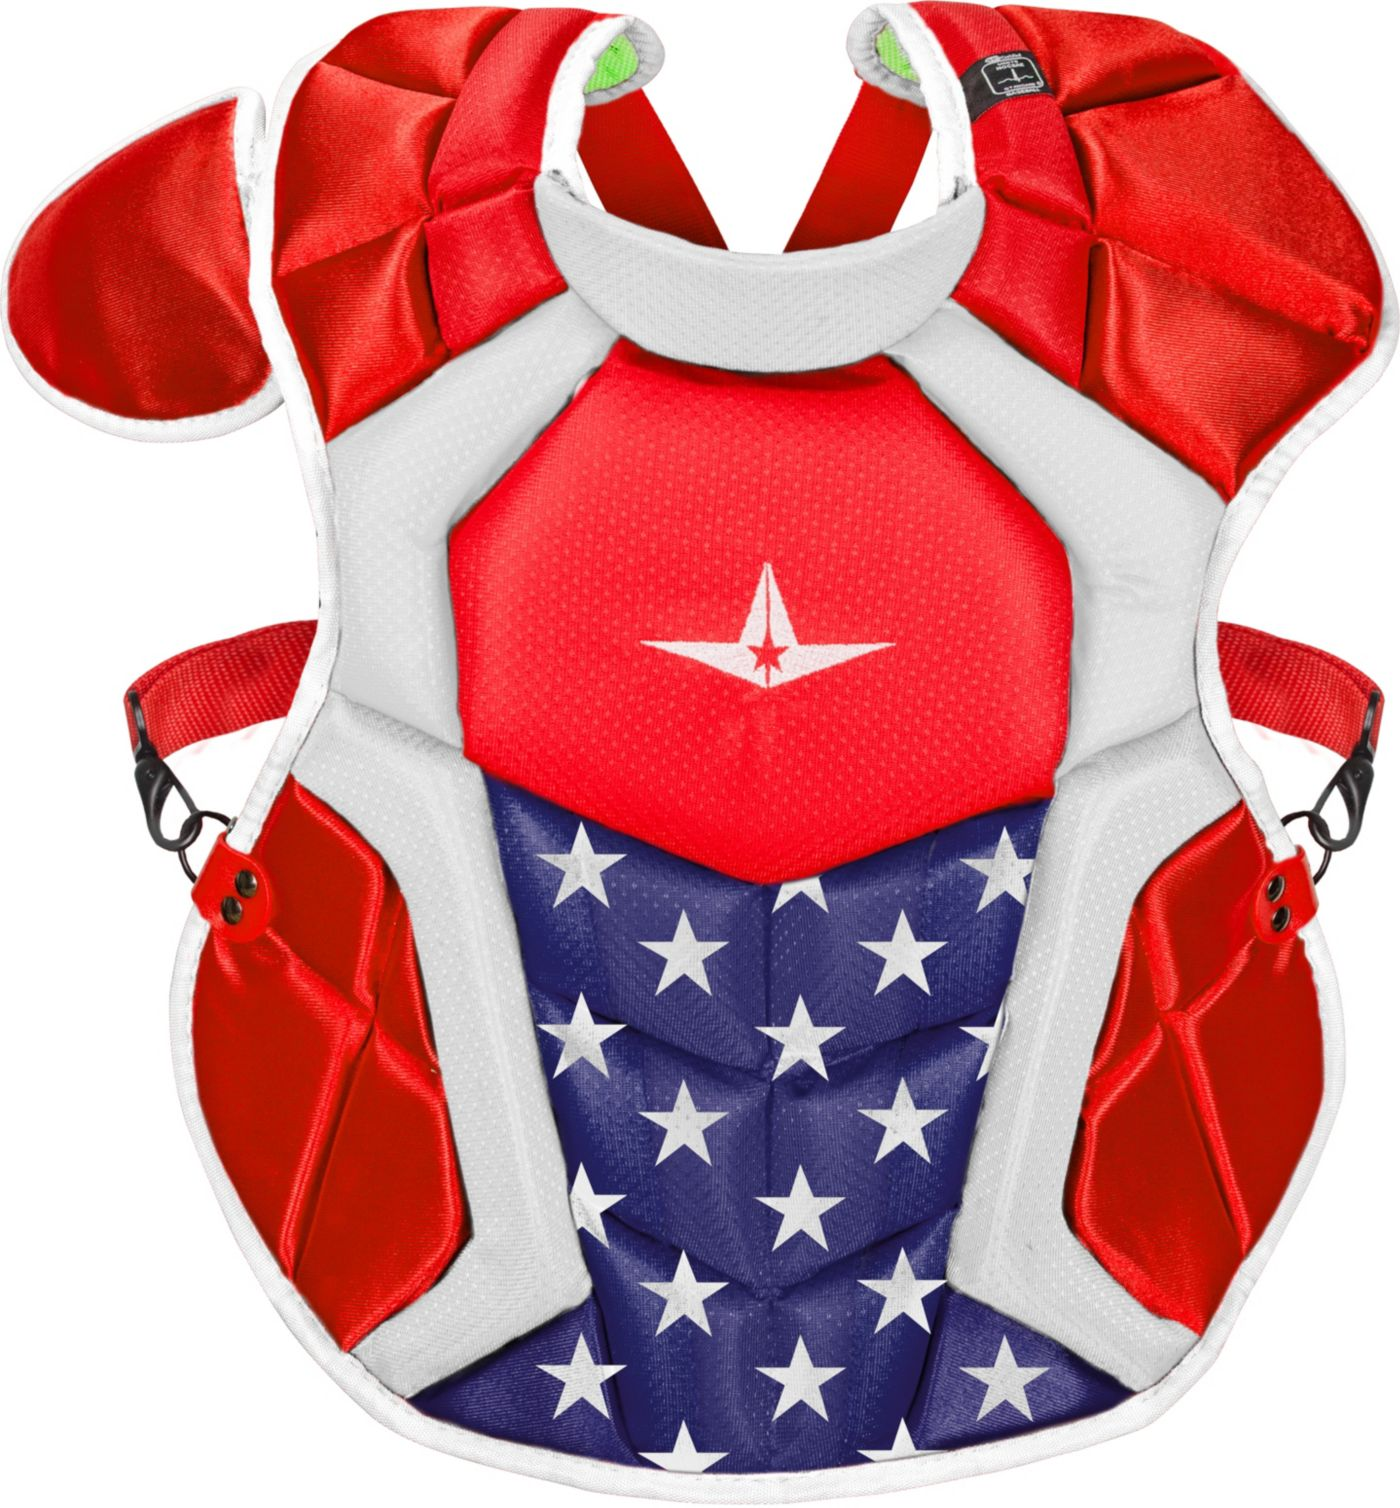 All-Star Adult 16.5'' S7 AXIS USA Chest Protector